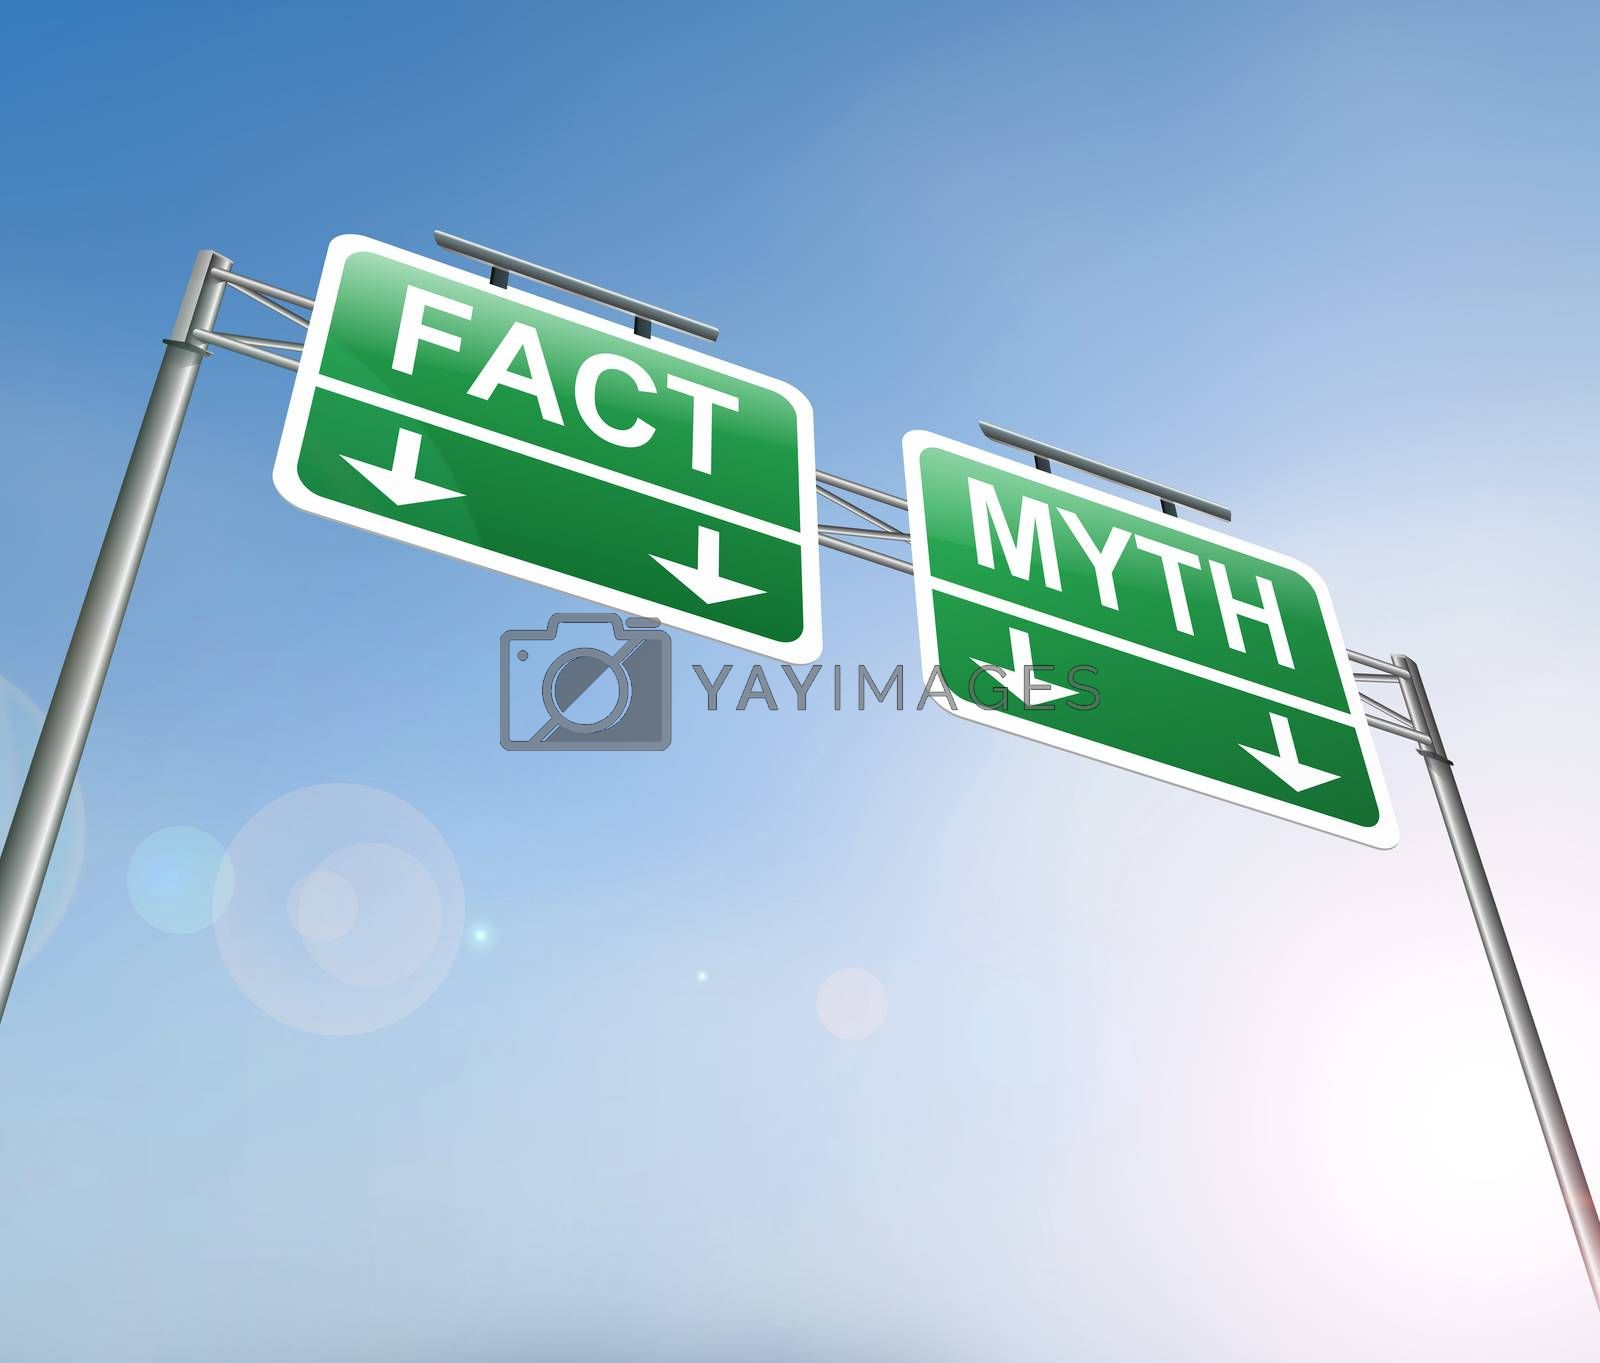 Illustration depicting a sign with a fact or myth concept.